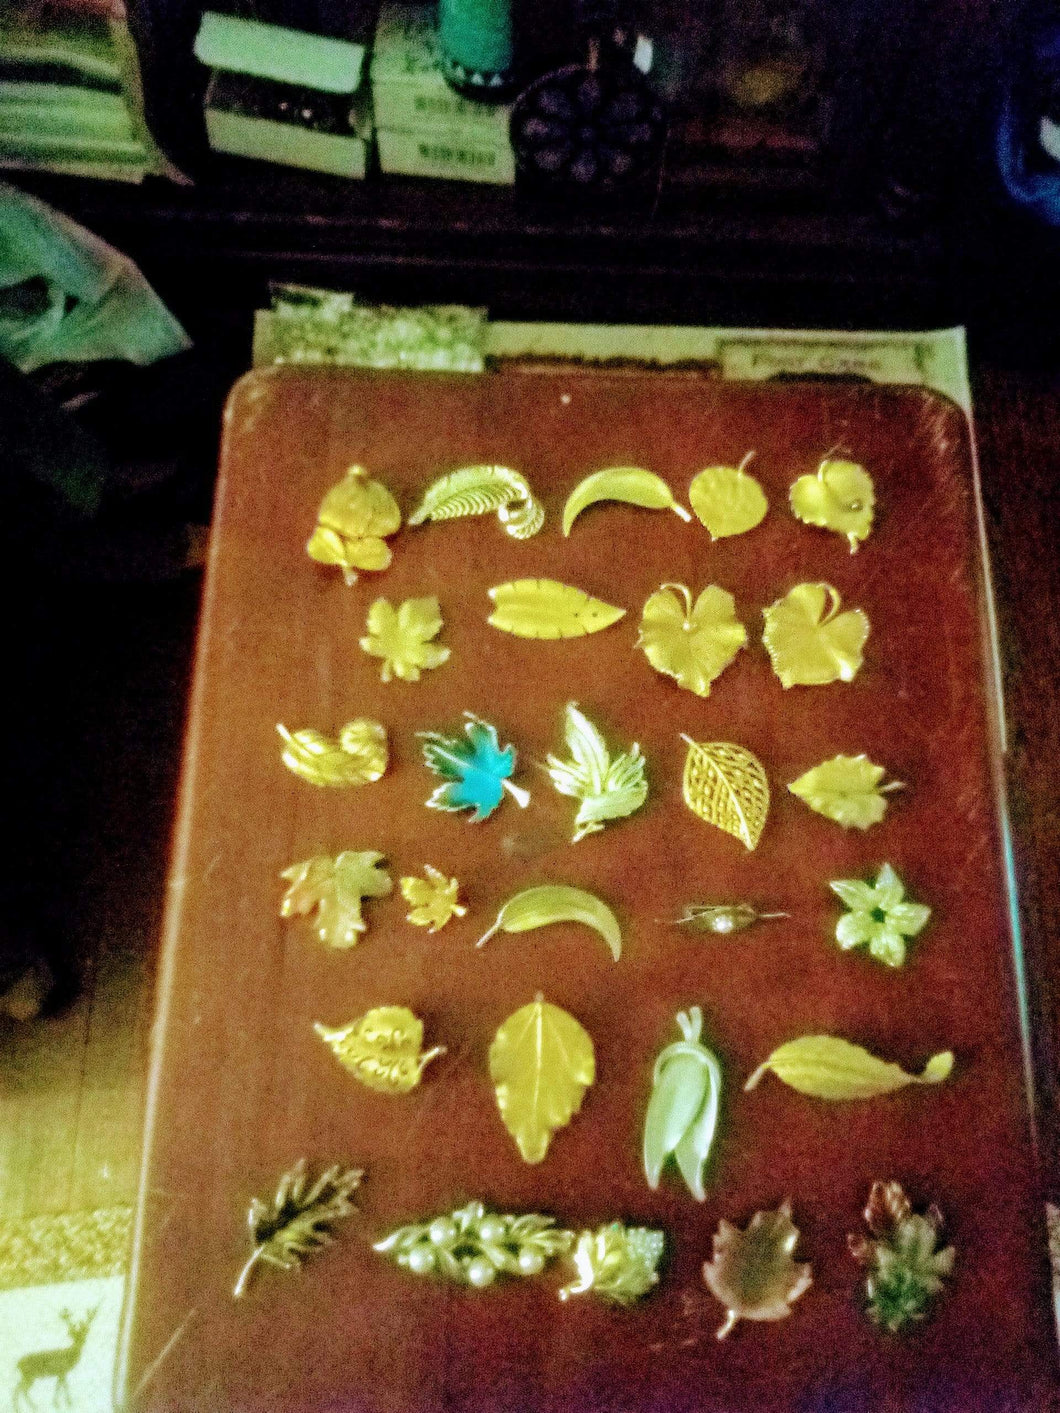 dressy lot of leaf broaches - B&P'sringsnthings